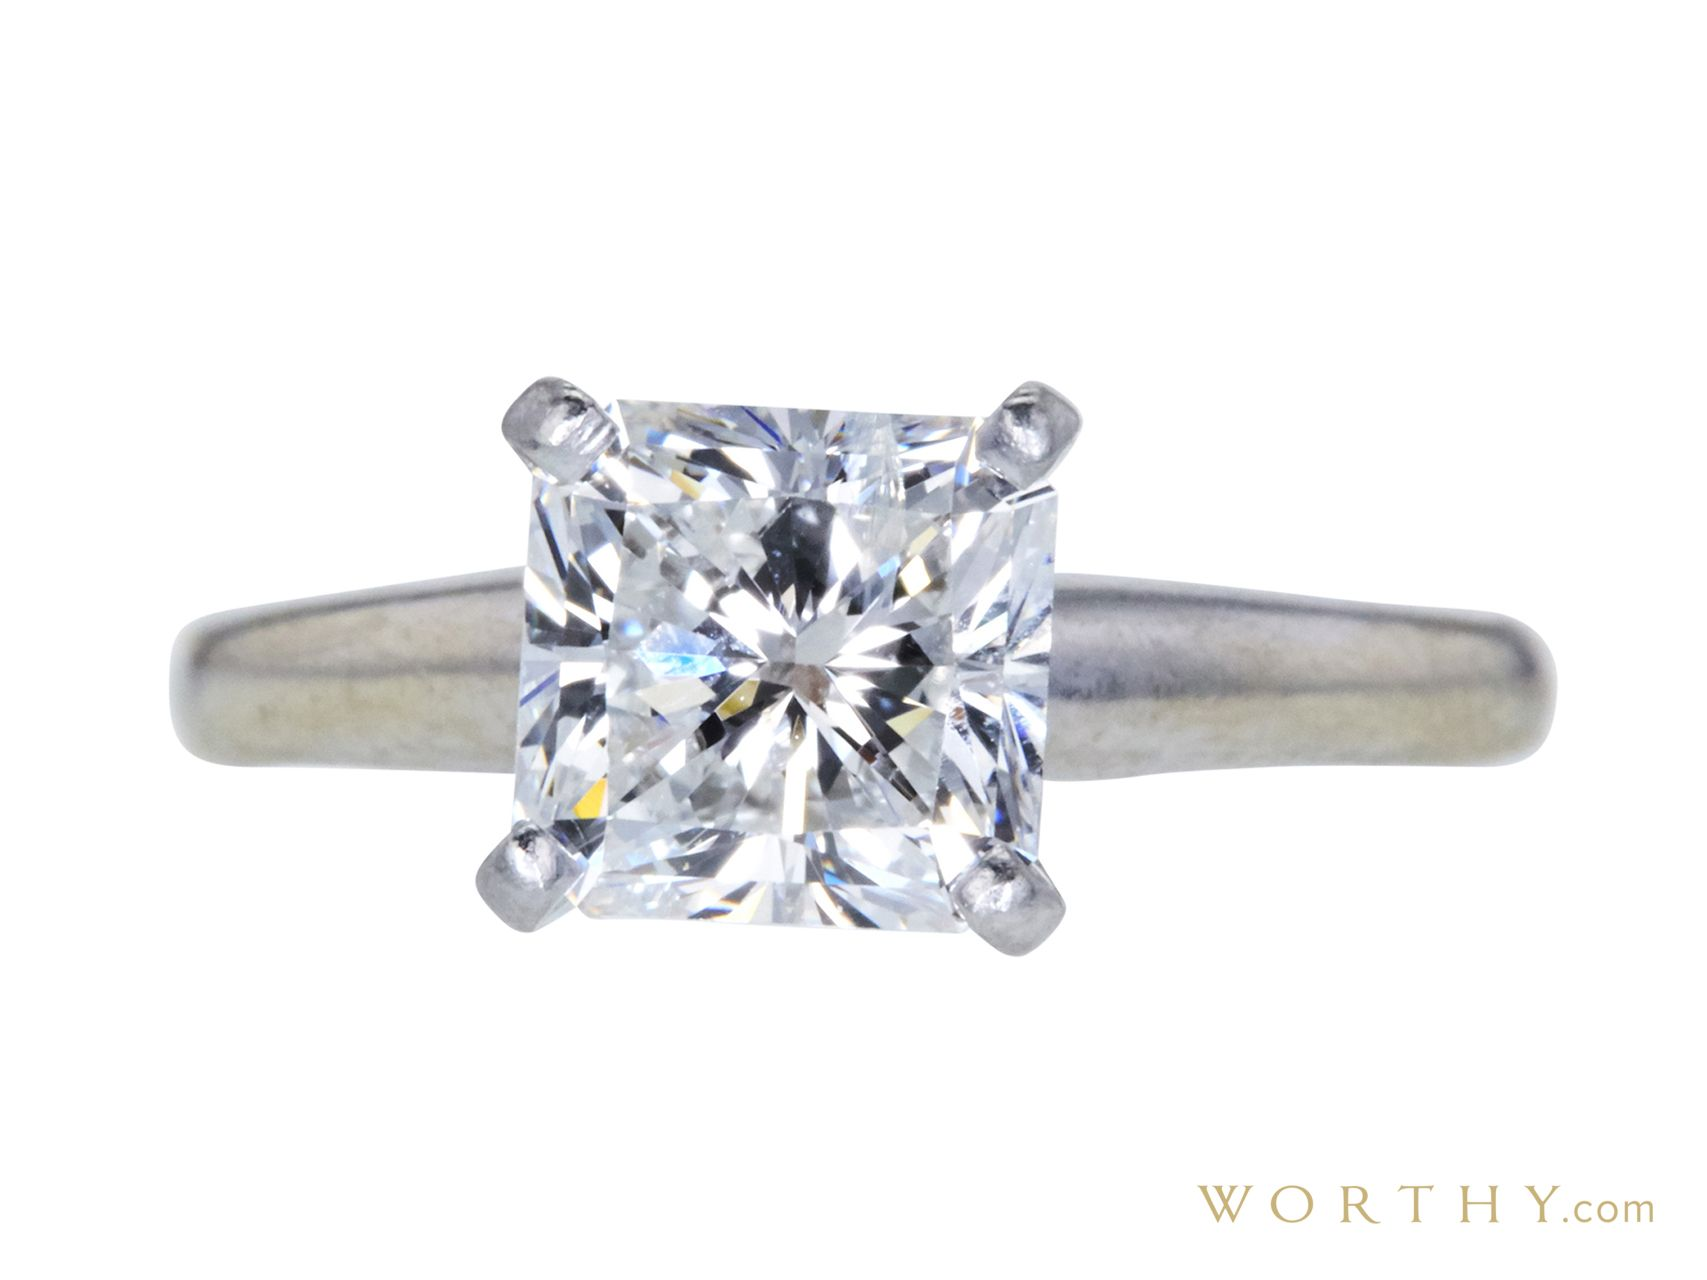 GIA 2.01 CT Radiant Cut Solitaire Ring Sold at Auction for $4,916